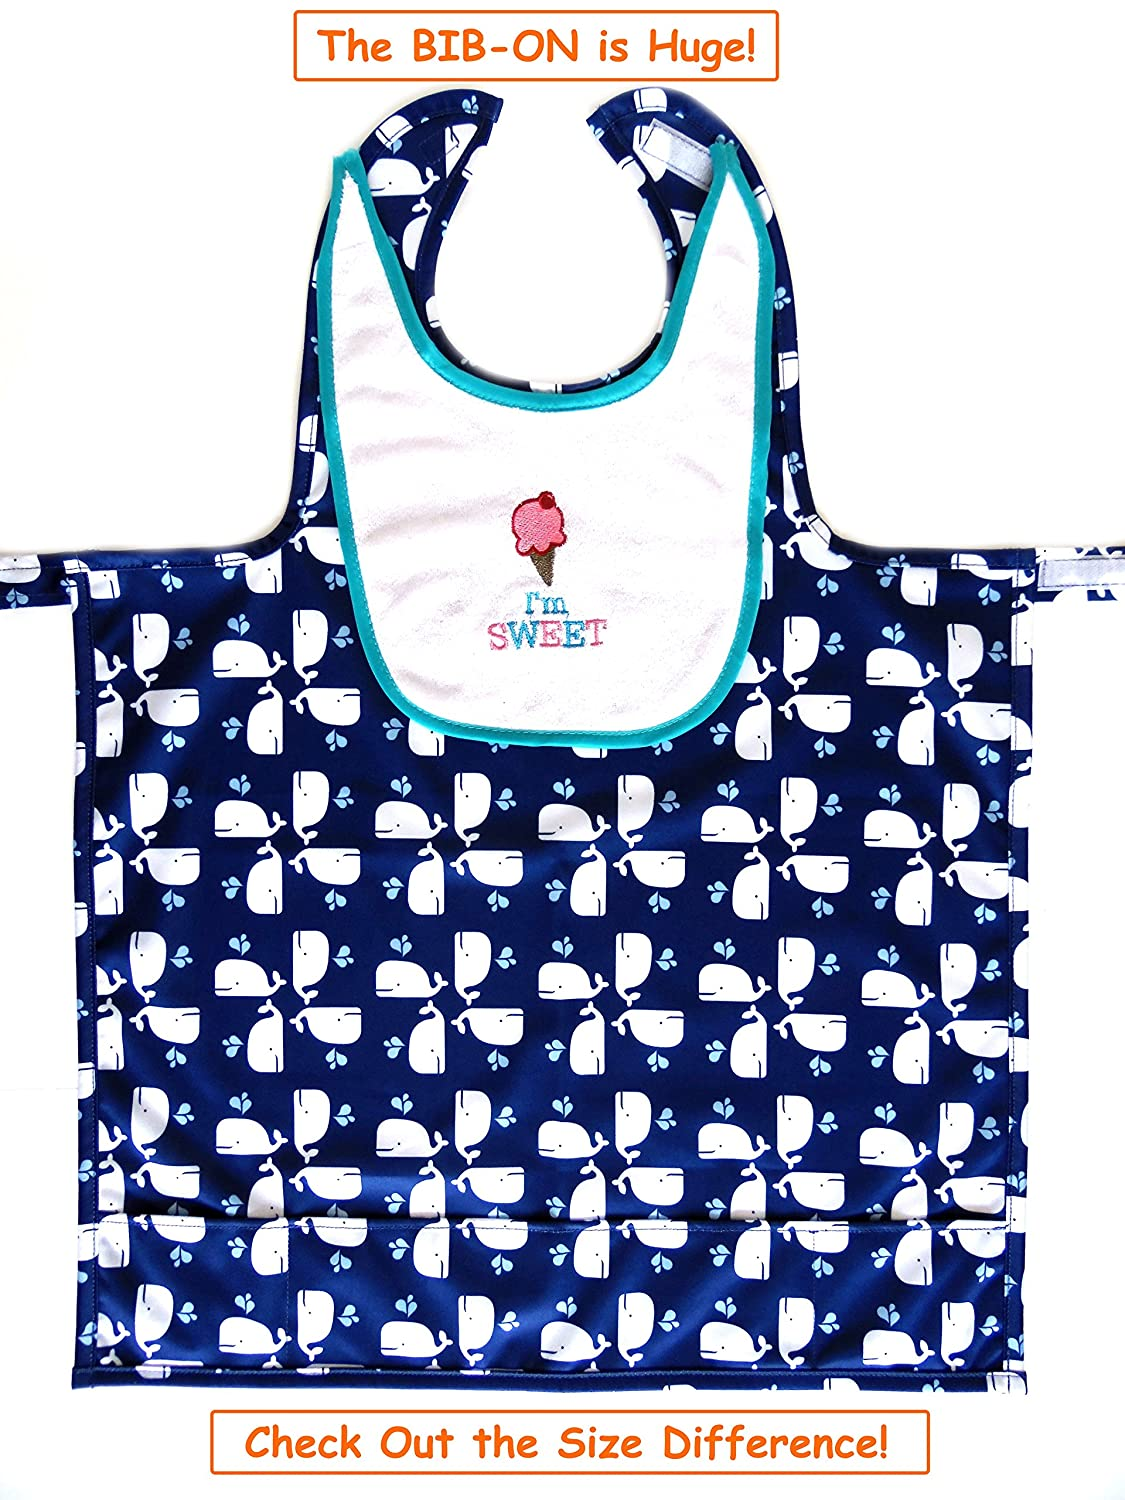 One Size Fits All! BIB-ON A New Toddler Ages 0-4+ Baby Full-Coverage Bib and Apron Combination for Infant